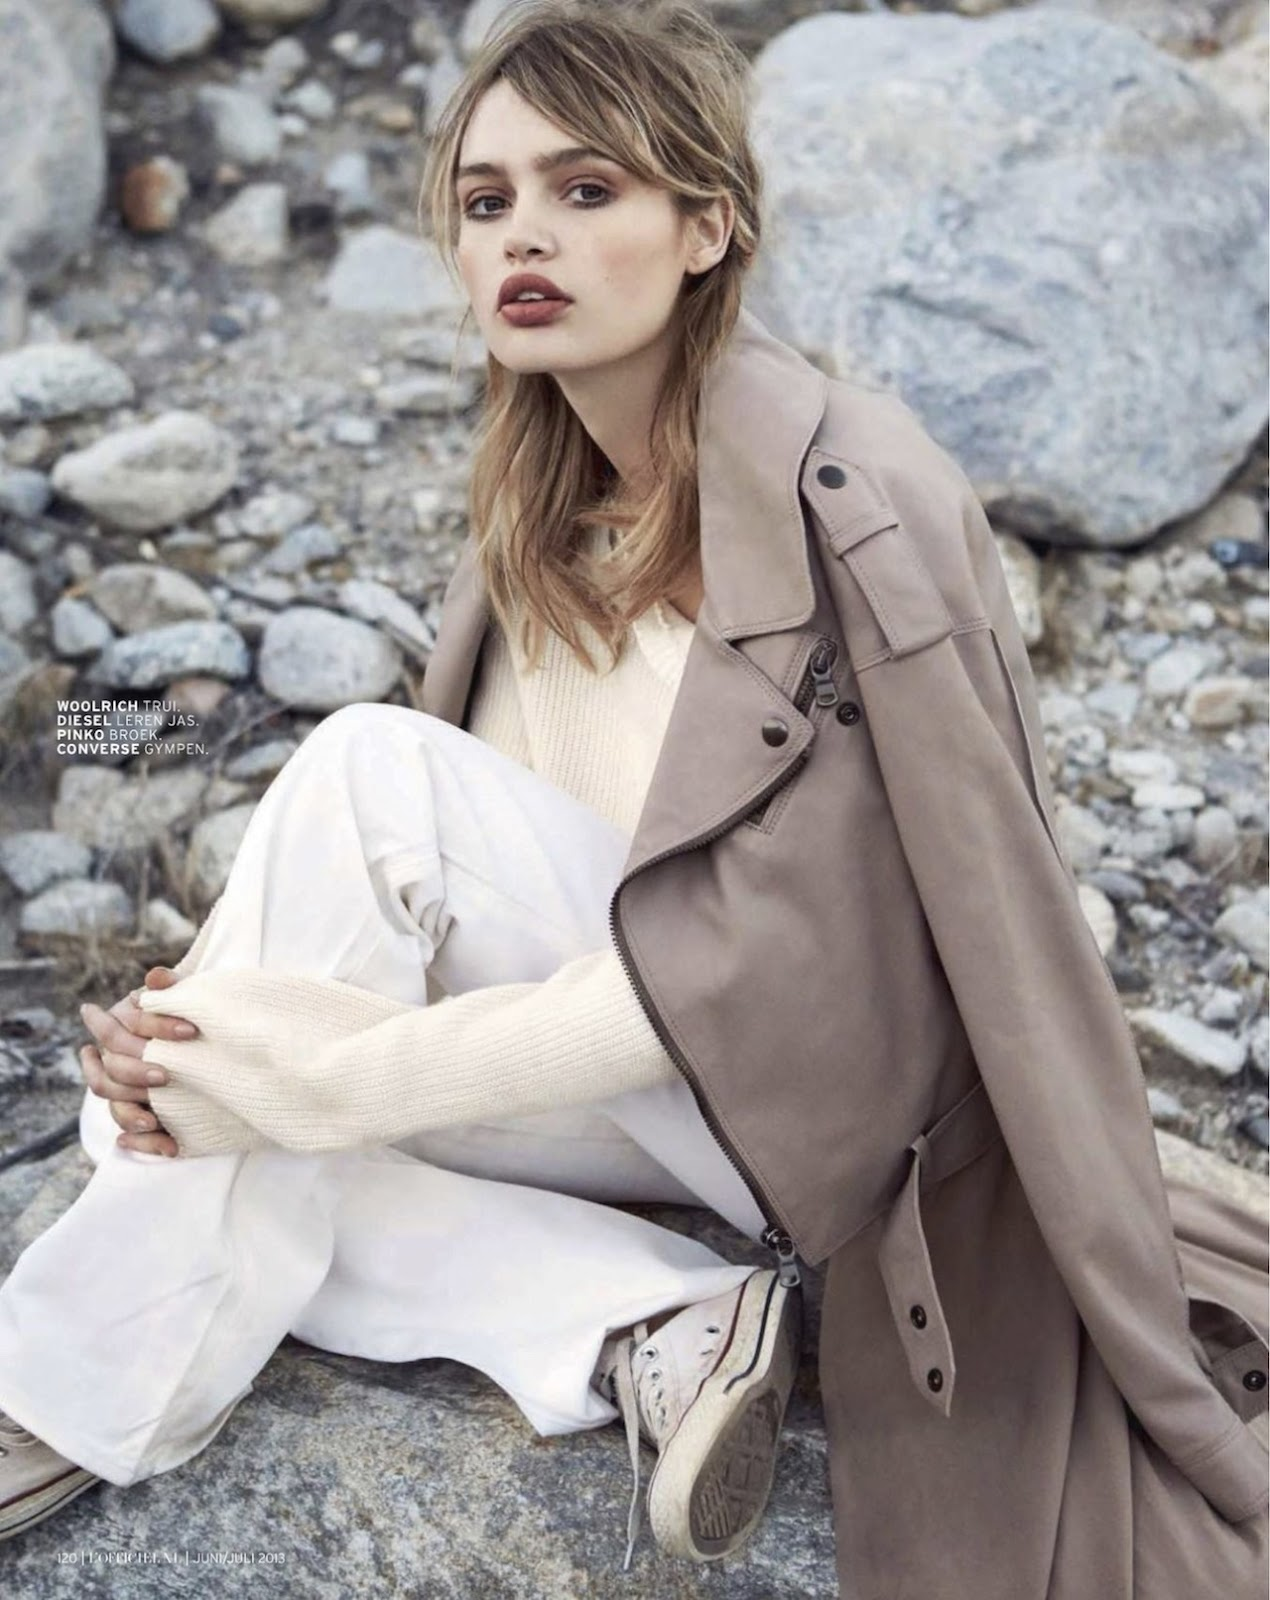 L'Officiel Netherlands June/July 2013 via www.fashionedbylove.co.uk